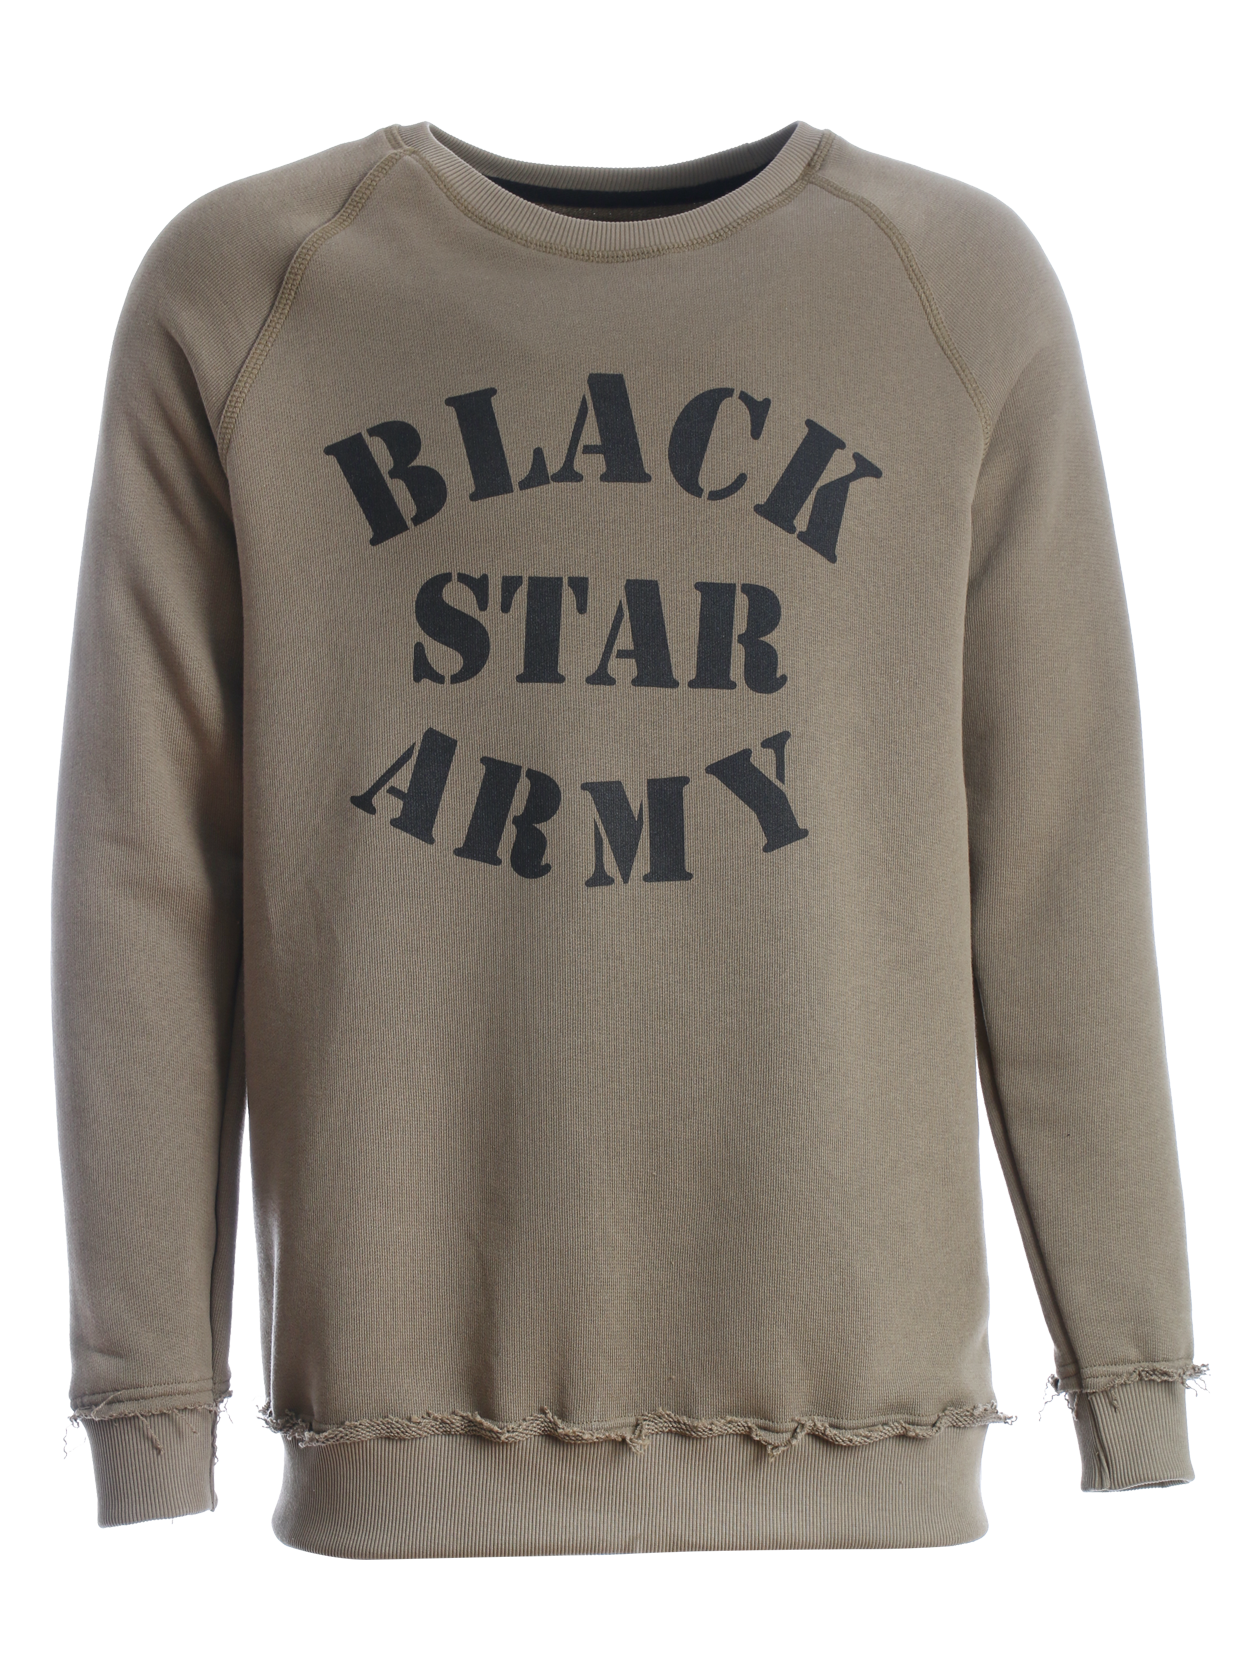 Mens sport suit Black Star Army